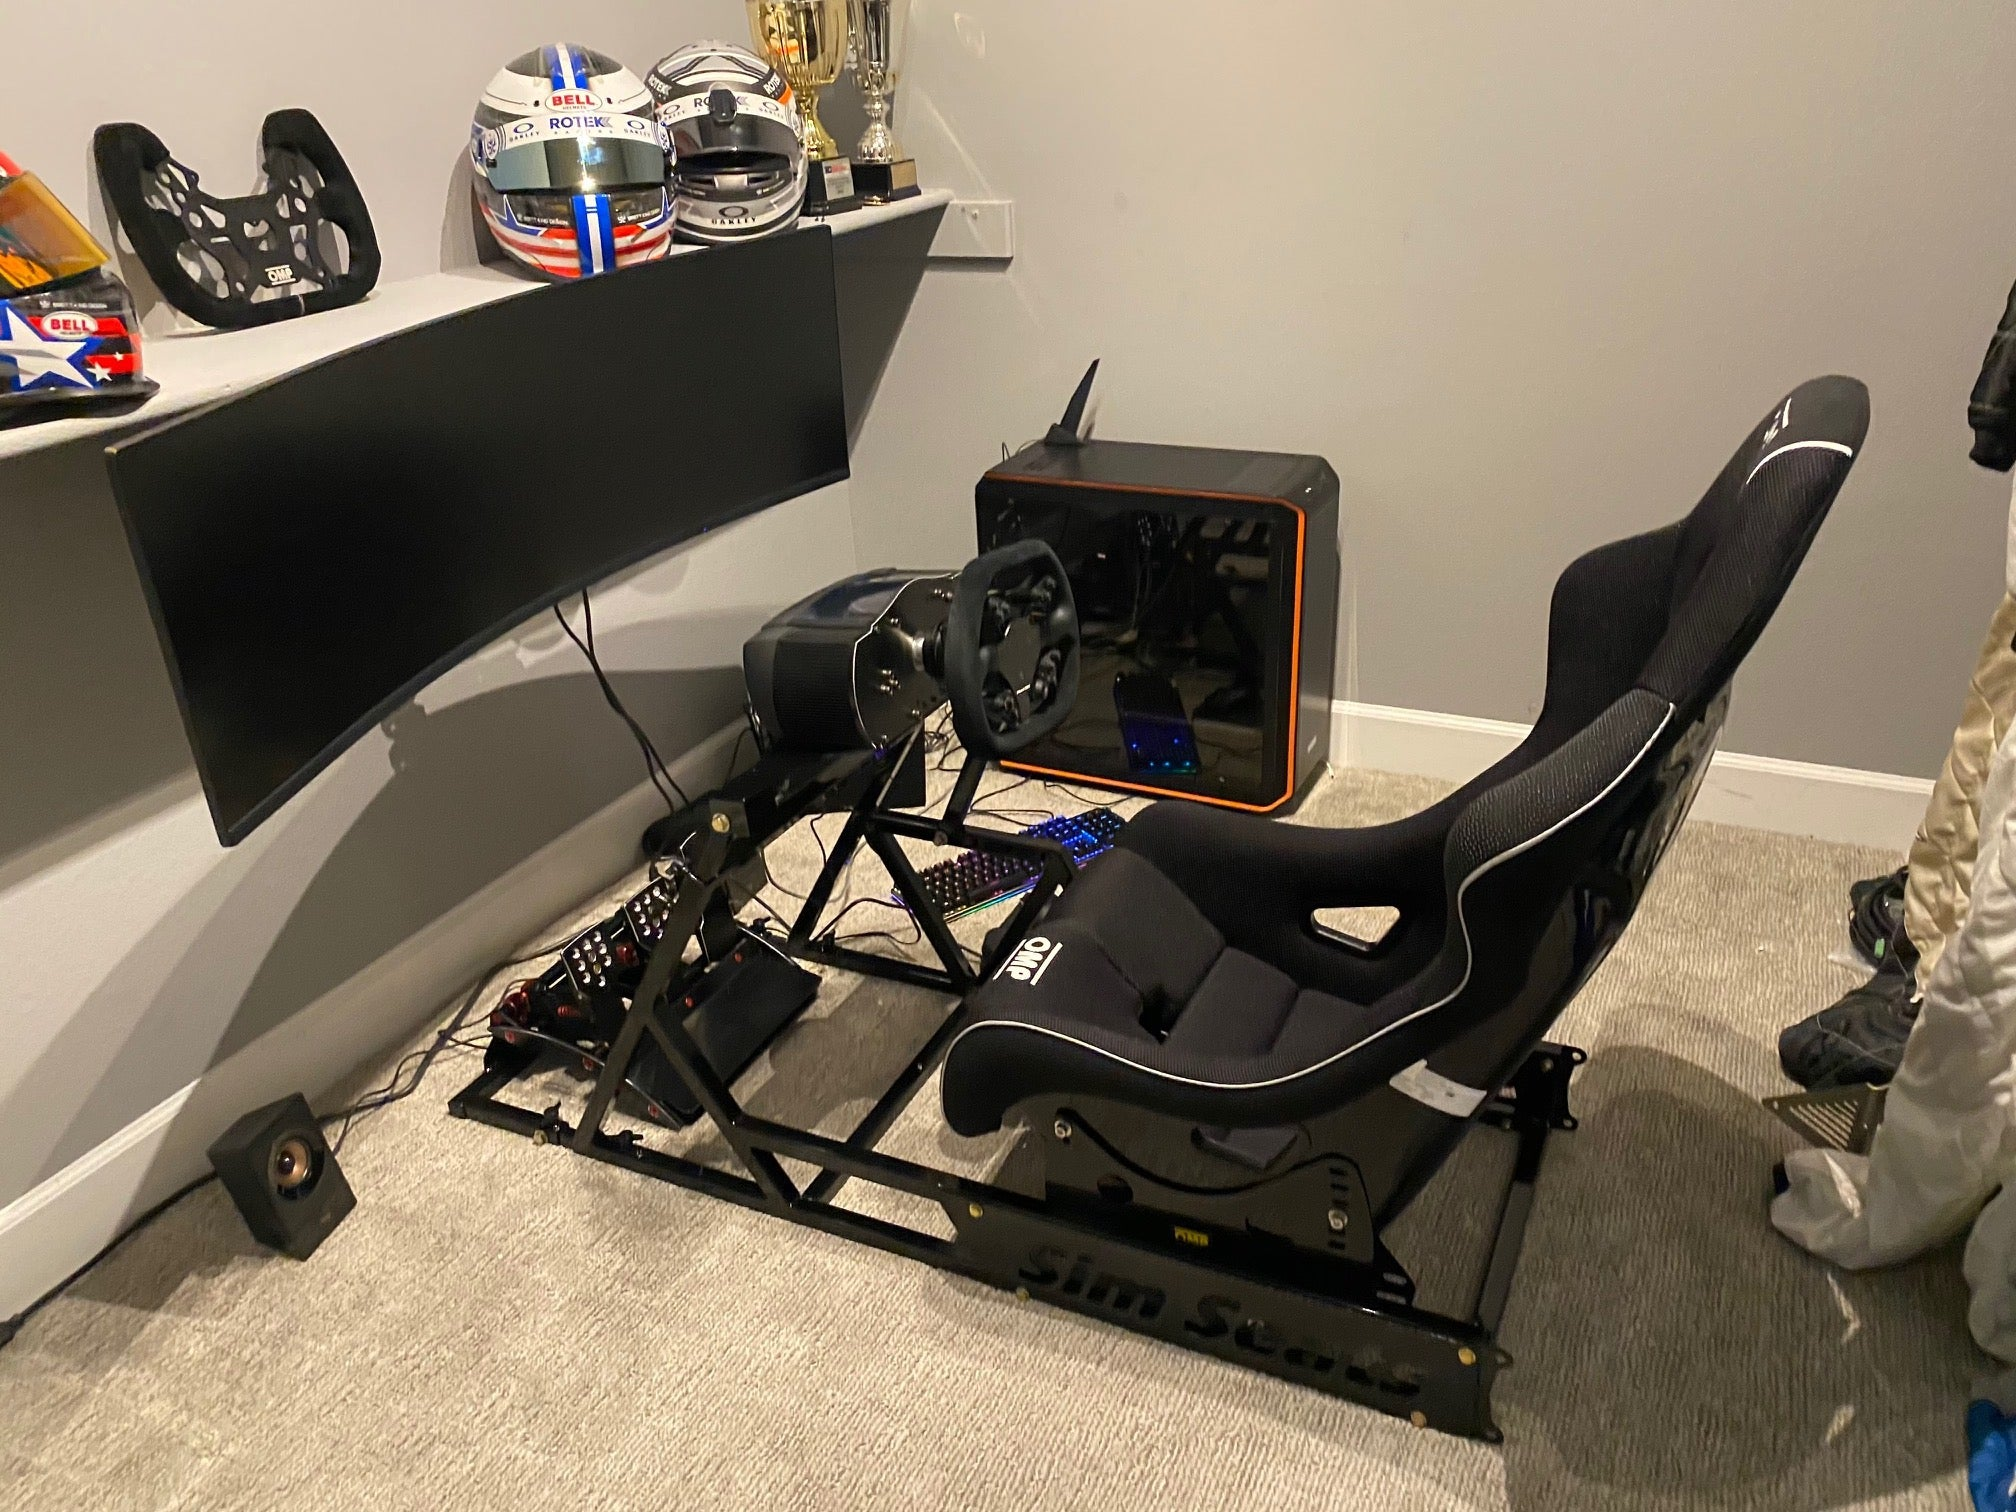 I Spent 8 085 To Build My Pro Sim Racing Rig Here S What I Bought